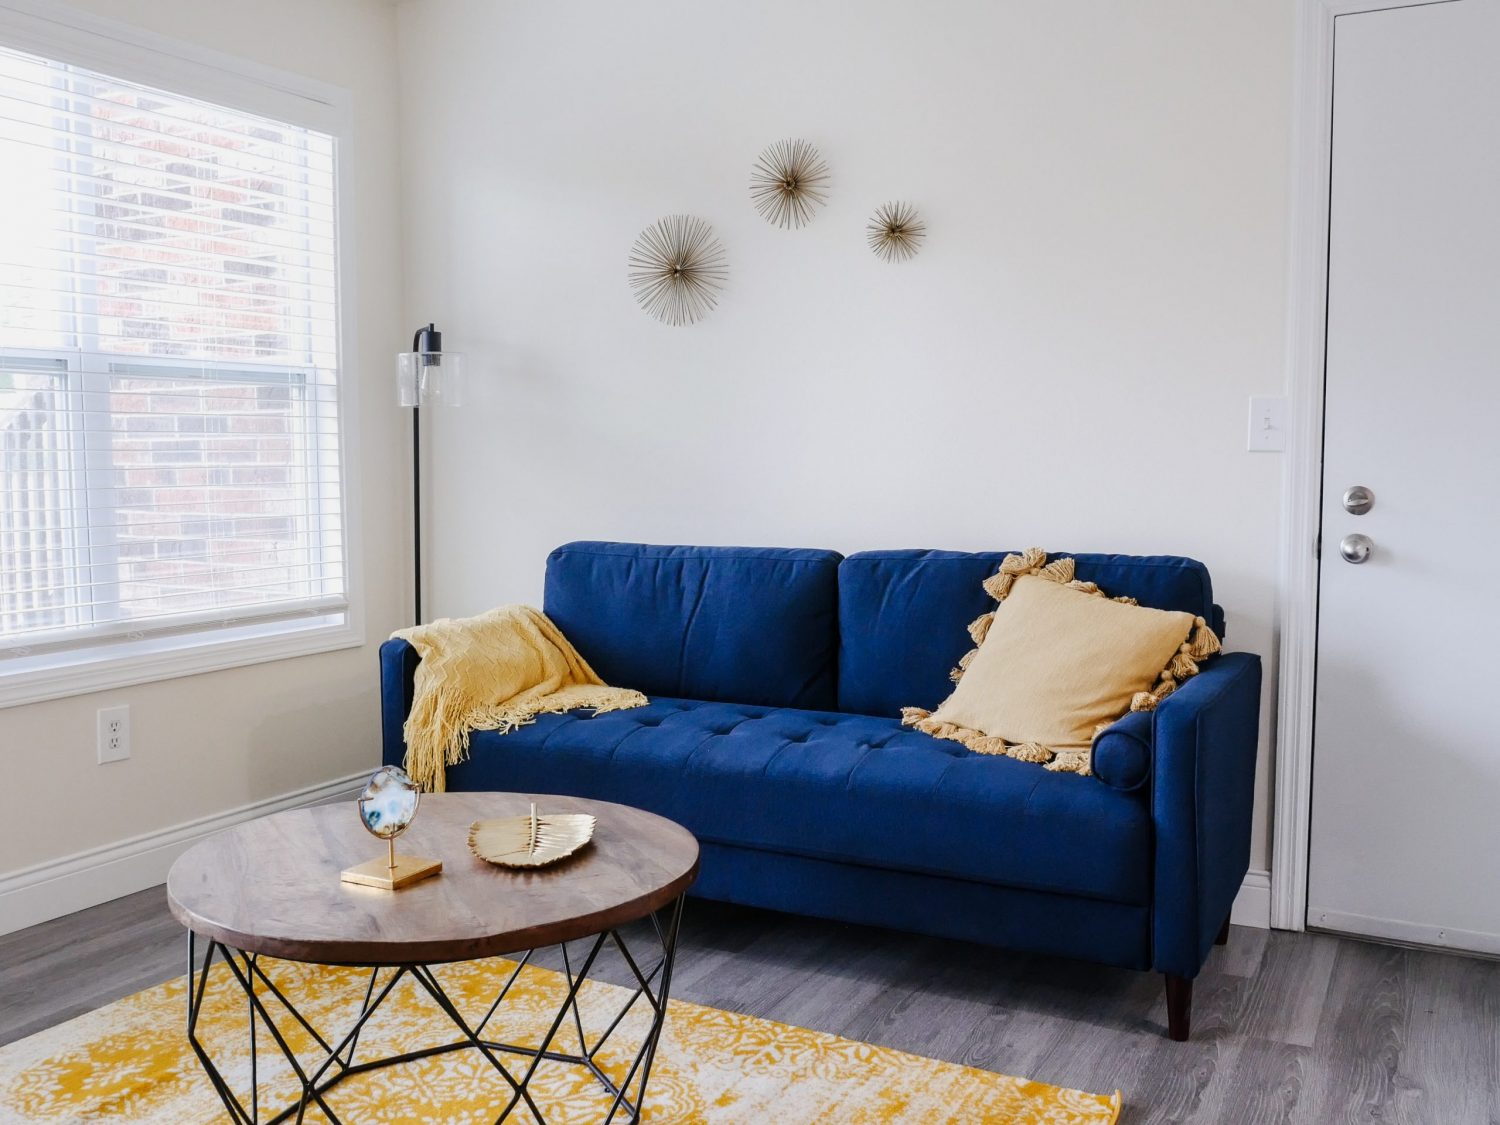 room with couch and table